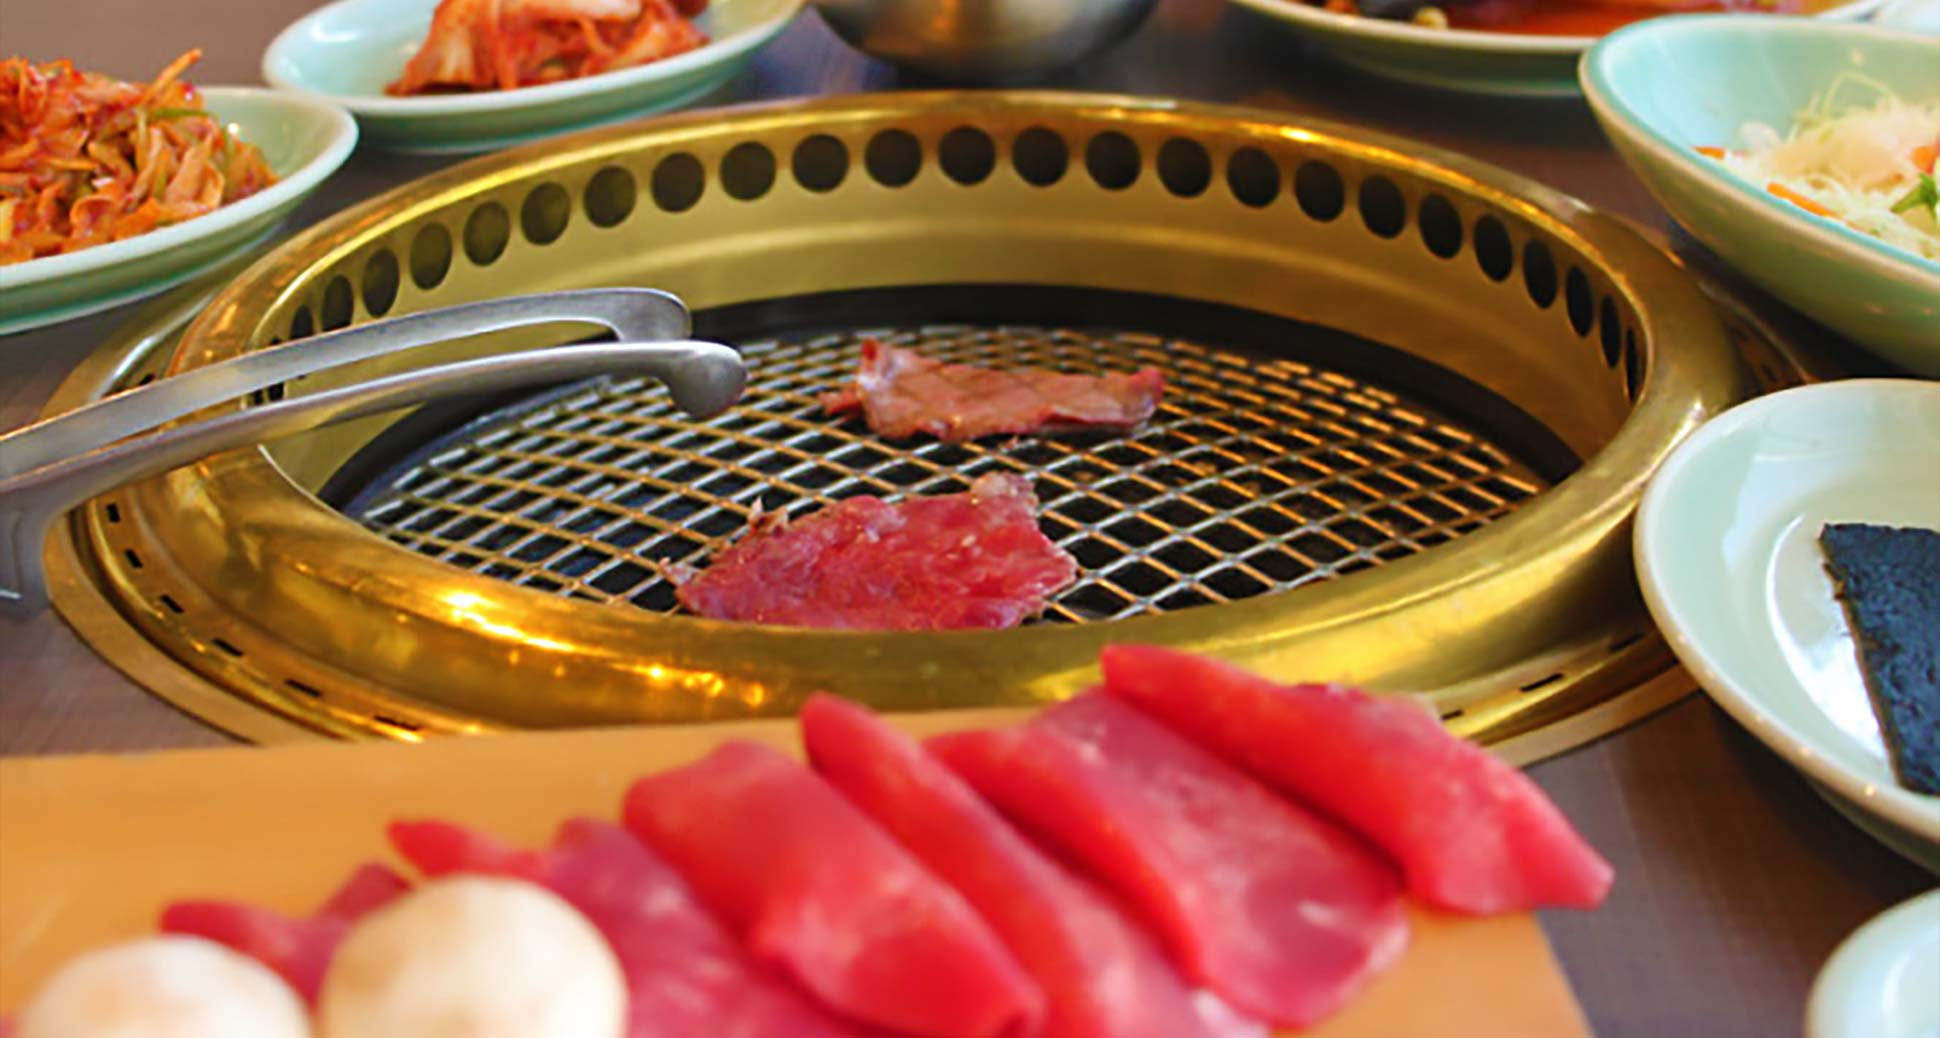 Sura korean bbq is featured in the barbecue lover's itinerary!